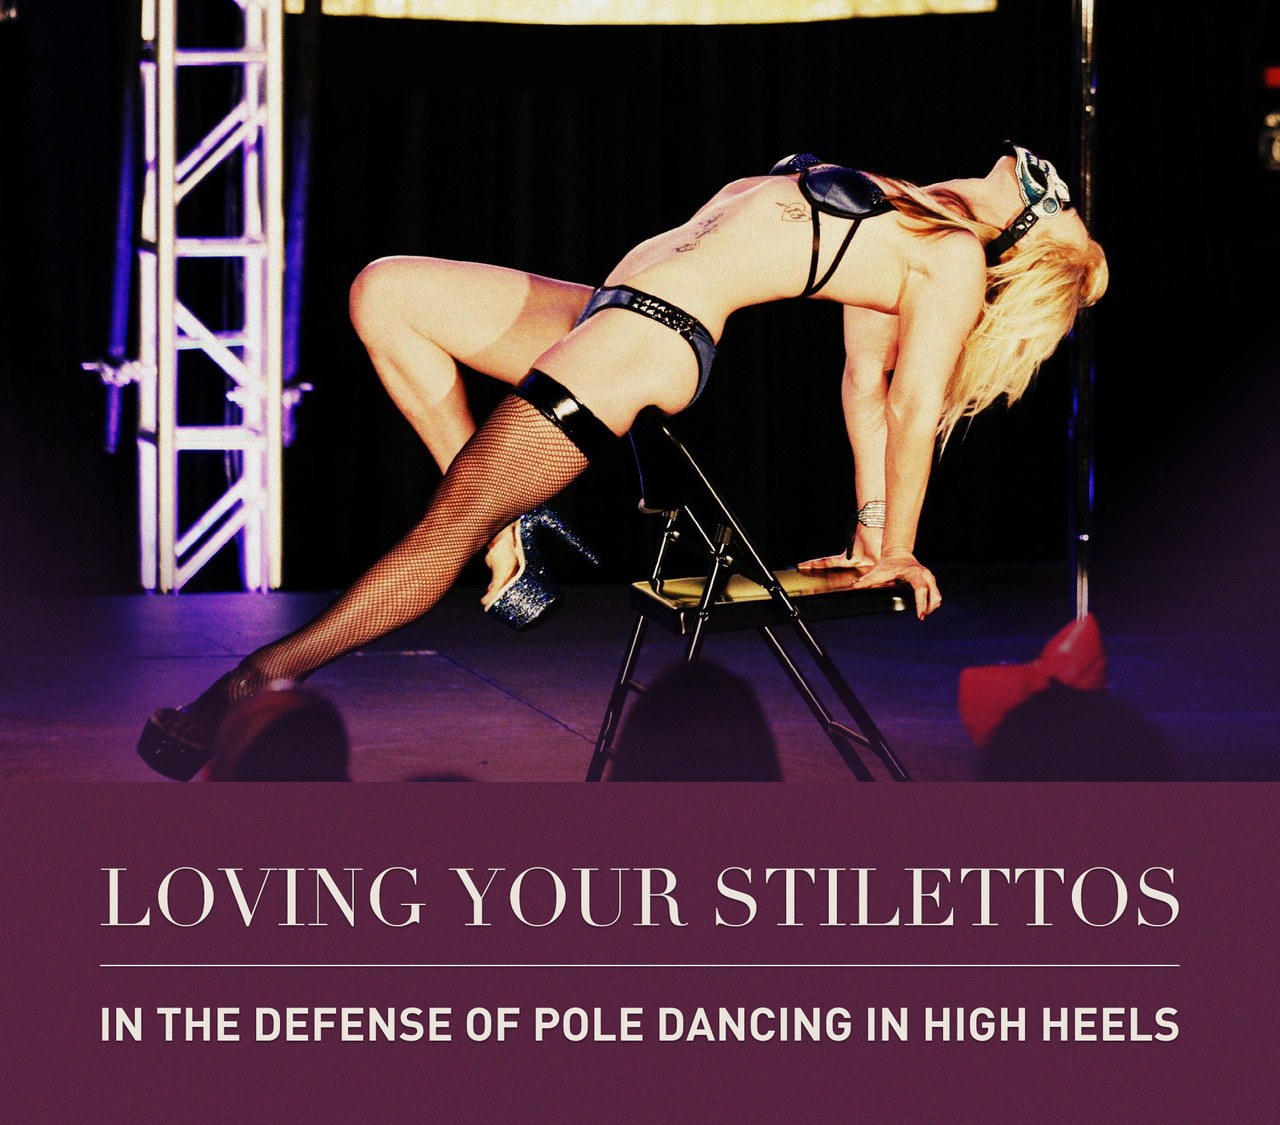 """In the Defense of Pole Dancing in Heels"" aka ""Day 28: Shoes or no shoes? Why?"" of The 30 Day Pole Challenge. I've been putting off this post for awhile because I have a lot of opinions on the question, but I want to say both are great. I believe that it's good training try and use both in practice.  And in the defense of heels:It really is a bummer to hear that so many girls in the ""pole fit"" community hate heels because they ""cheapen"" the look of the dance. I do believe in fitting the look of a performance to the music. This goes right down to footwear. If the song calls for it, don't be afraid to whip out the shoes to add an extra oomph to your peformance. I myself would never have the confidence to dance to a rock/alt/metal song without the aid of my heels.  Heels work your body harder since they will add weight to your inverts and will force you to point your toes. Your calves will look AWESOME after dancing in heels since you're actively lifting and lengthening your legs. Floorwork will be a piece of cake in heels, as you will have both the heel and the toe of the shoes to slide around on. If you have time, I would definitely advise you to watch an Alethea Austin video. Watch her floorwork — it's as smooth as butter. Shoes add a wonderful element of slinky and sexy that is difficult to achieve without shoes.  However, bare feet is also beautiful. There is a versatility that is unmatched in working with bare feet; the power of a pointed toe and a flexed foot are really just awe-inspiring to see on stage. A pointed toe is literally what it sounds like, pointing your to accentuate the arch of your foot. A flexed foot is the look of a foot when the balls of a foot are stretched back with toes and arch and pointing towards your face. Have you ever watched an aerial silks or hoop video? Dancers will fluctuate between the two because of their function, whether it be climbing or holding. A pointed toe at all times is what every dancer wants to be actively practicing towards. It shows that the dance is encompassing all of your body parts — from the movement of your fingers to the tips of your toes. But remember, a flexed foot is also powerful. It can act as grip aid or add a strong visual line to a pose. Can you imagine a V-spin or Spinning Straddle with a flexed foot? You're probably like: ""Gross, I would never do that! That's RAUNCHY!"", but if you were playing a character in your dance — say you were pretending to be the Big Bad Wolf dancing to Another Brick in the Wall by Korn, it would be approriate!  Train in both and your dance will get stronger. Being a versatile dancer and performer means mastering all mediums, and this includes shoes. Try to be open minded about the types of movement shoes or no shoes will bring to your dance and what opportunities will present themselves. Finally, be proud and revel in your accomplishment! You're dancing in 6 - 8"" heels that most people would sprain their ankles just trying to walk in!  Photo credit to Poleagraphy"